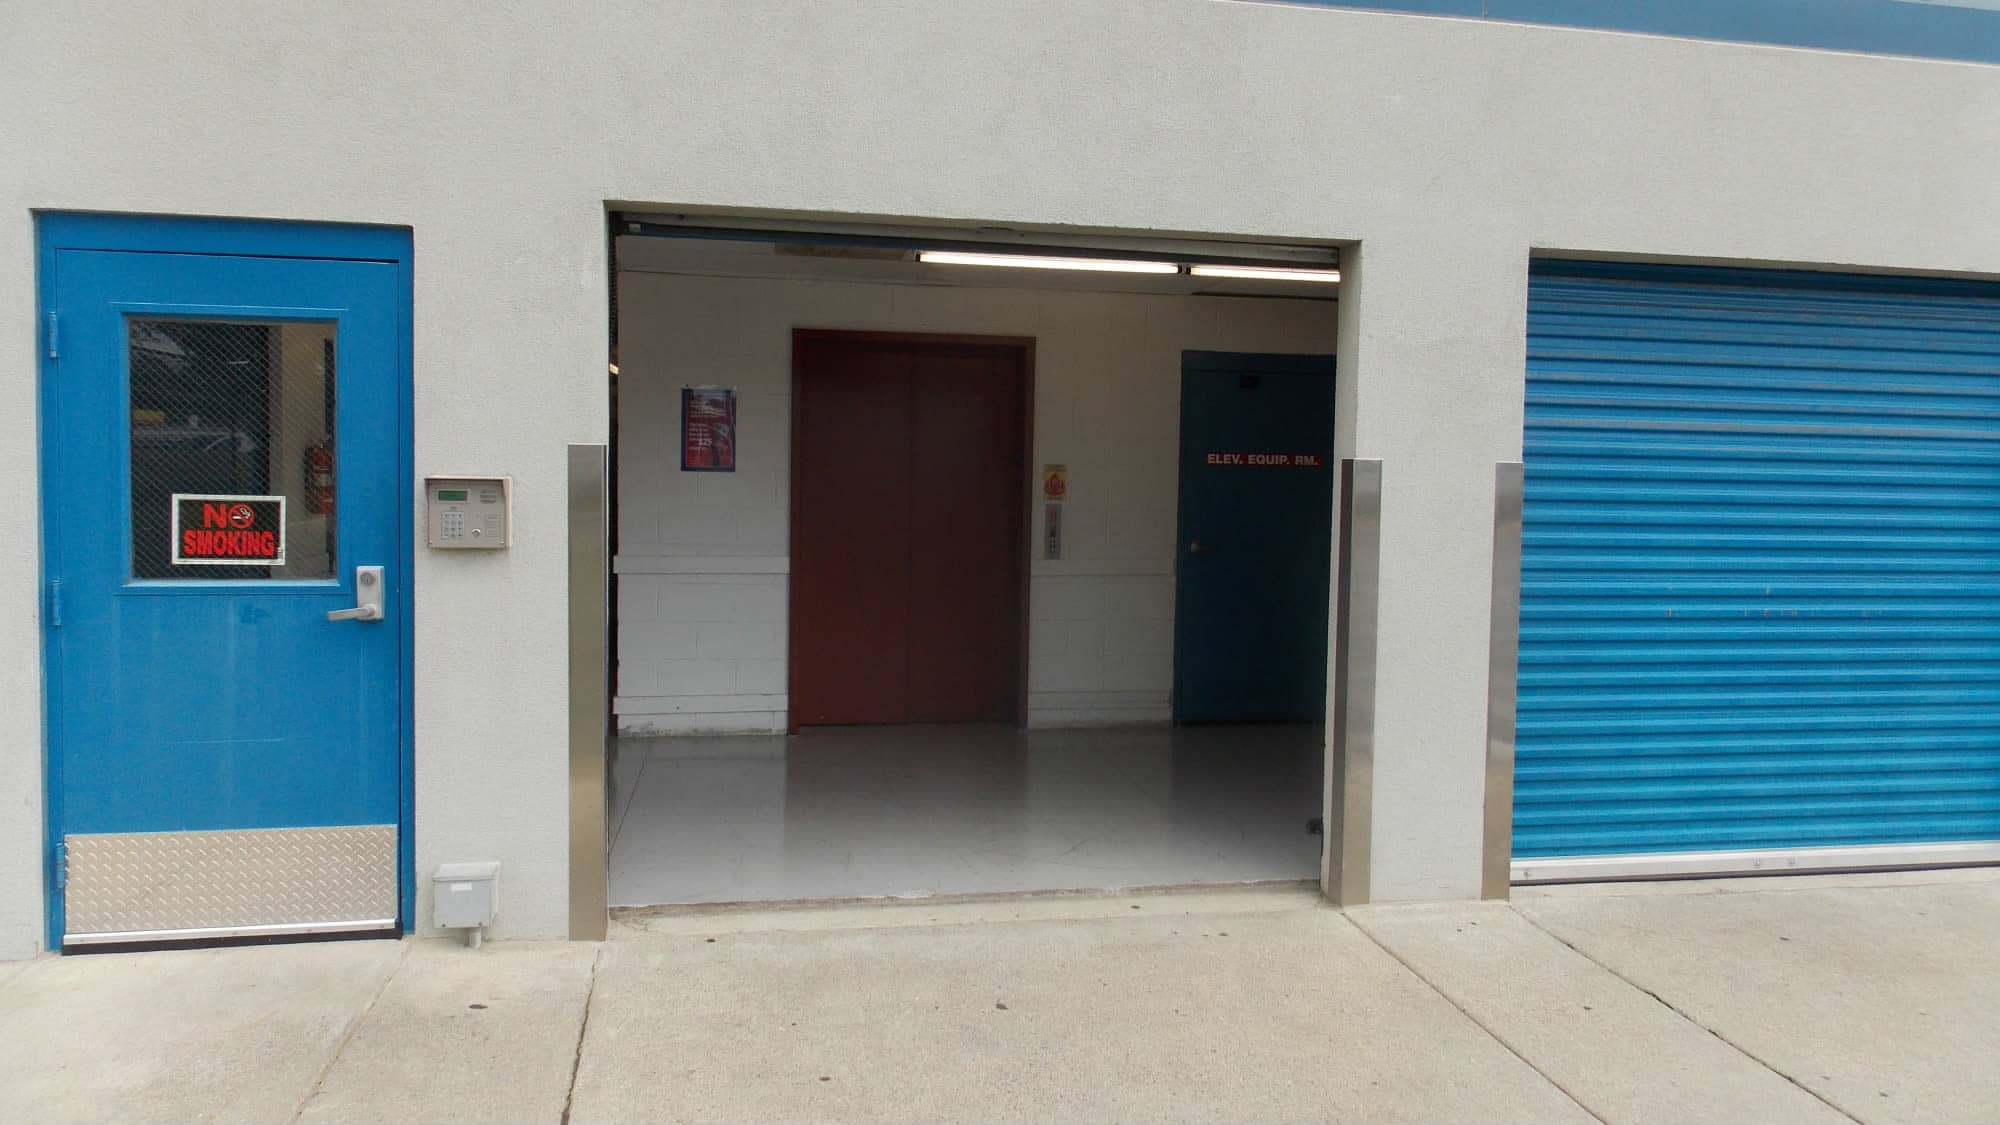 Loading area at Self Storage Plus in Silver Spring, MD